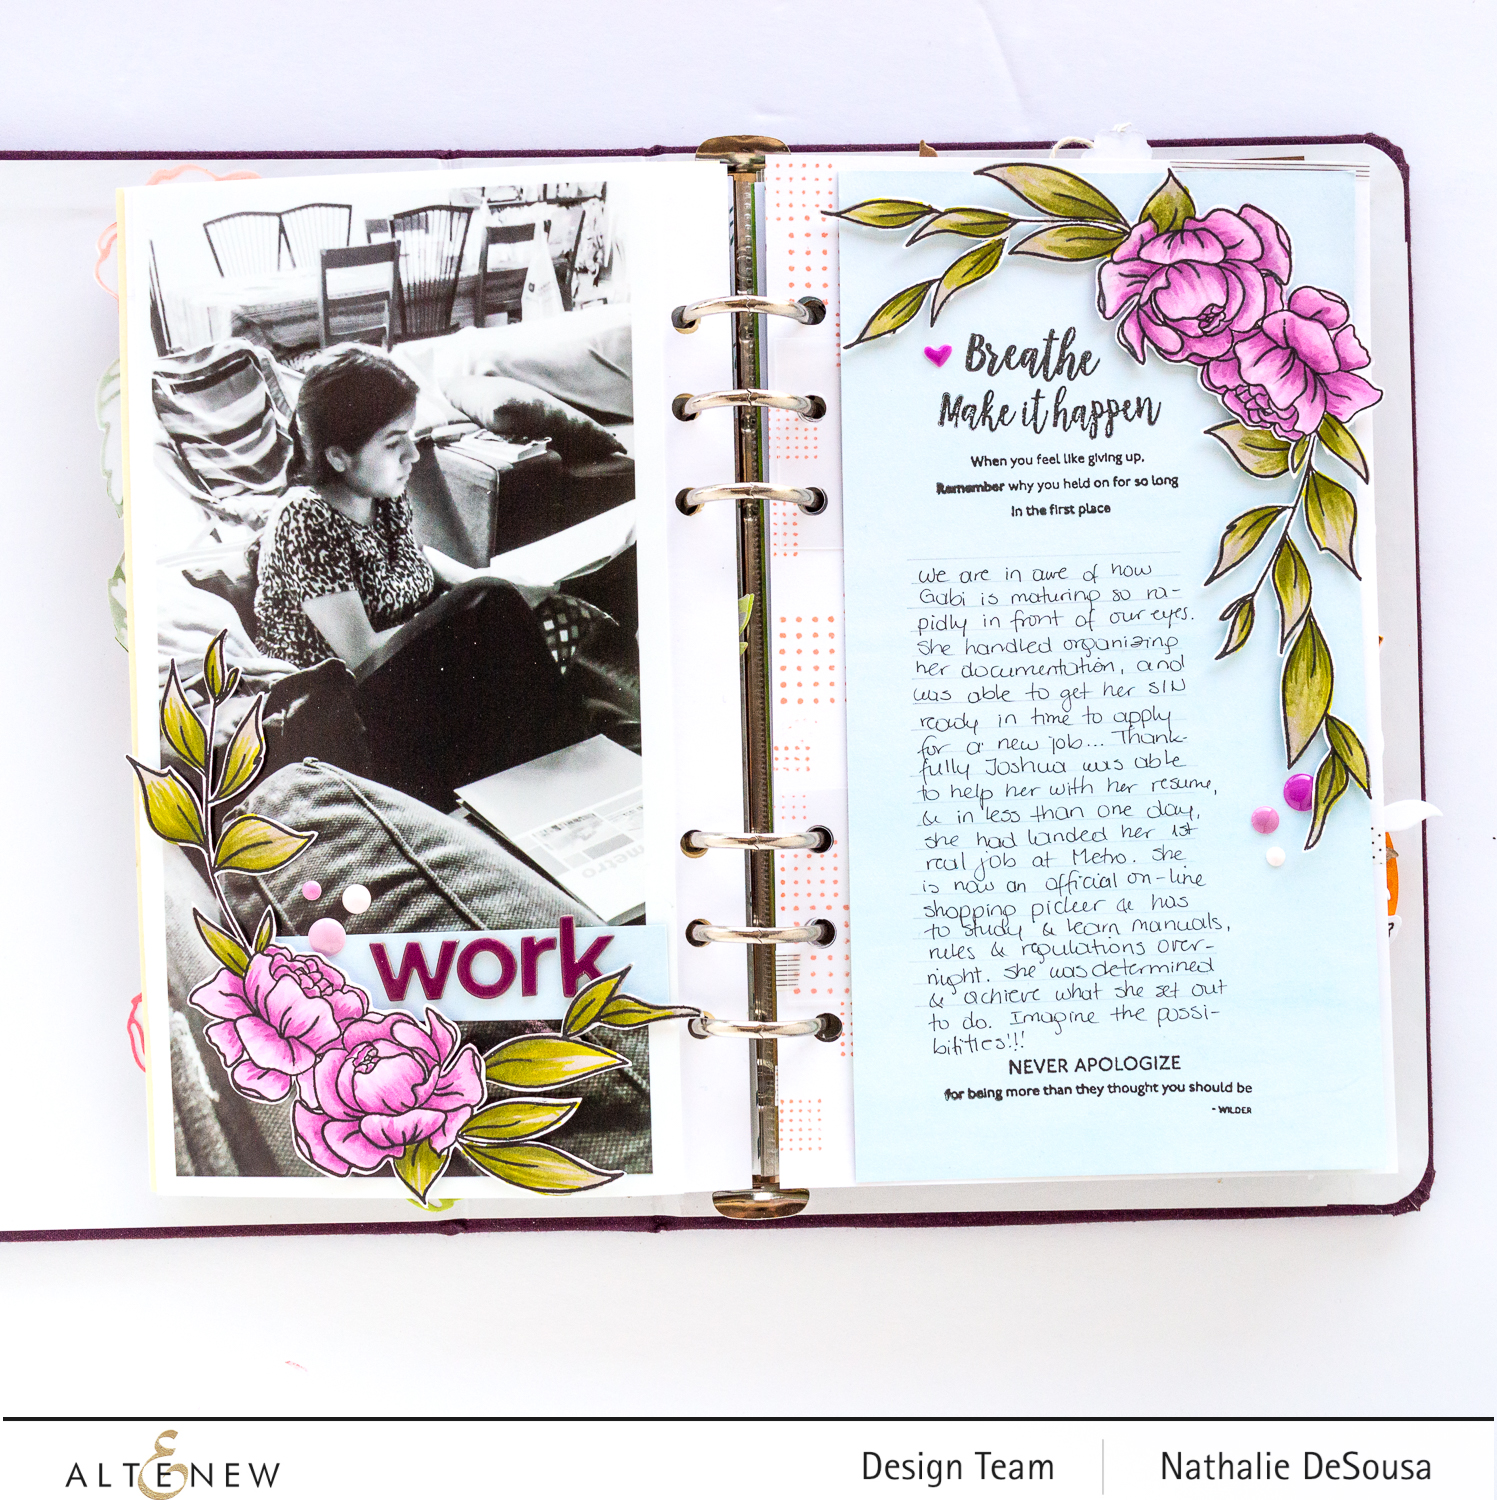 @altenew_ INSPIRATIONA QUOTES STAMP SET Highlight by Nathalie DeSousa